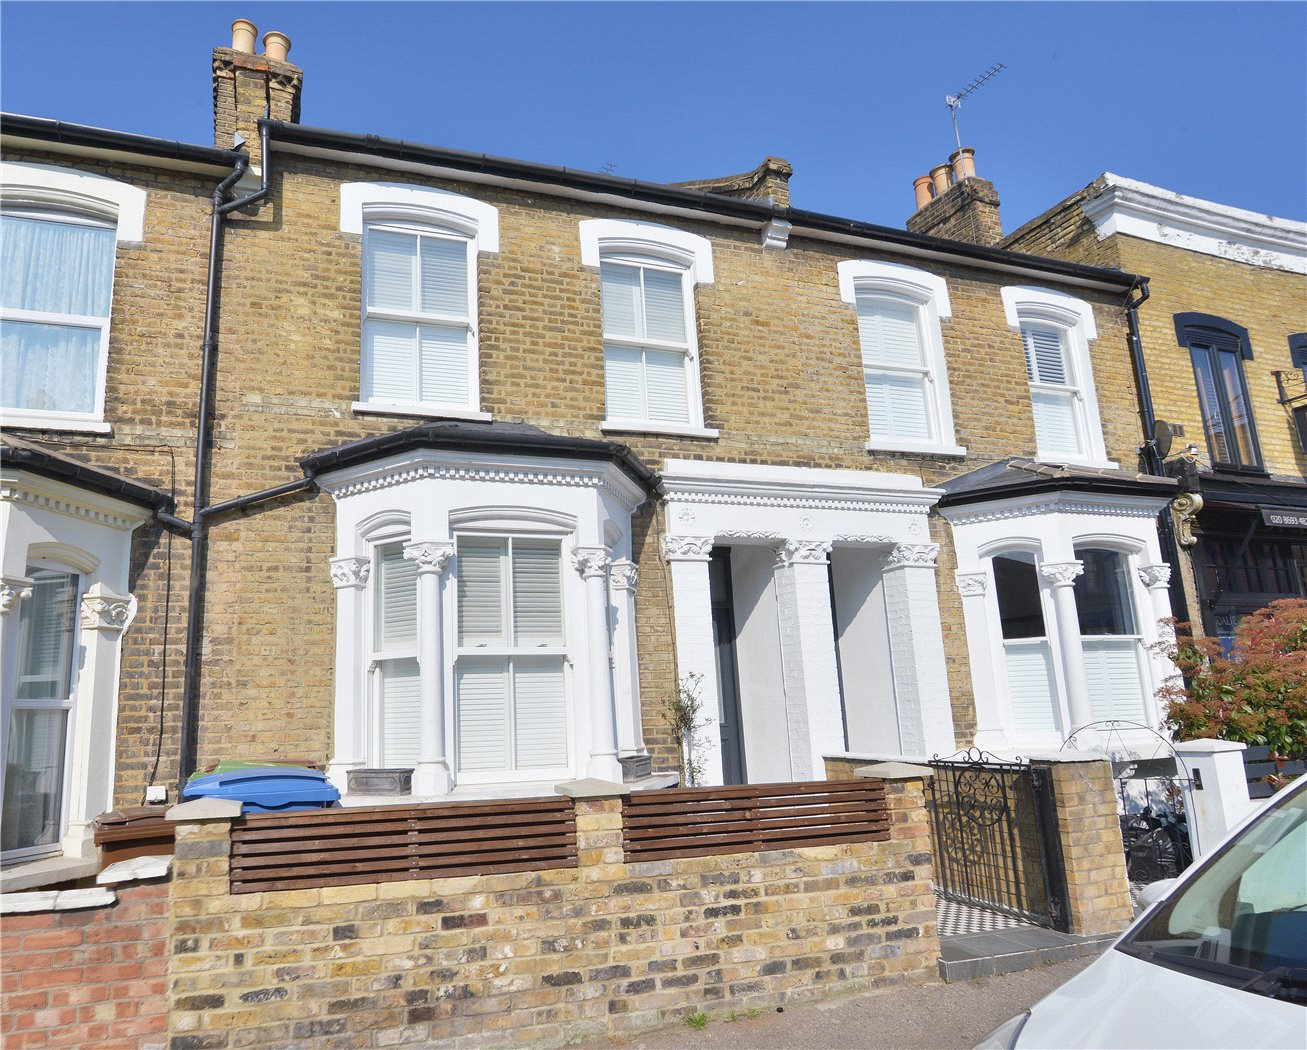 4 bedroom property for sale in North Cross Road, East Dulwich, SE22 - £1,300,000